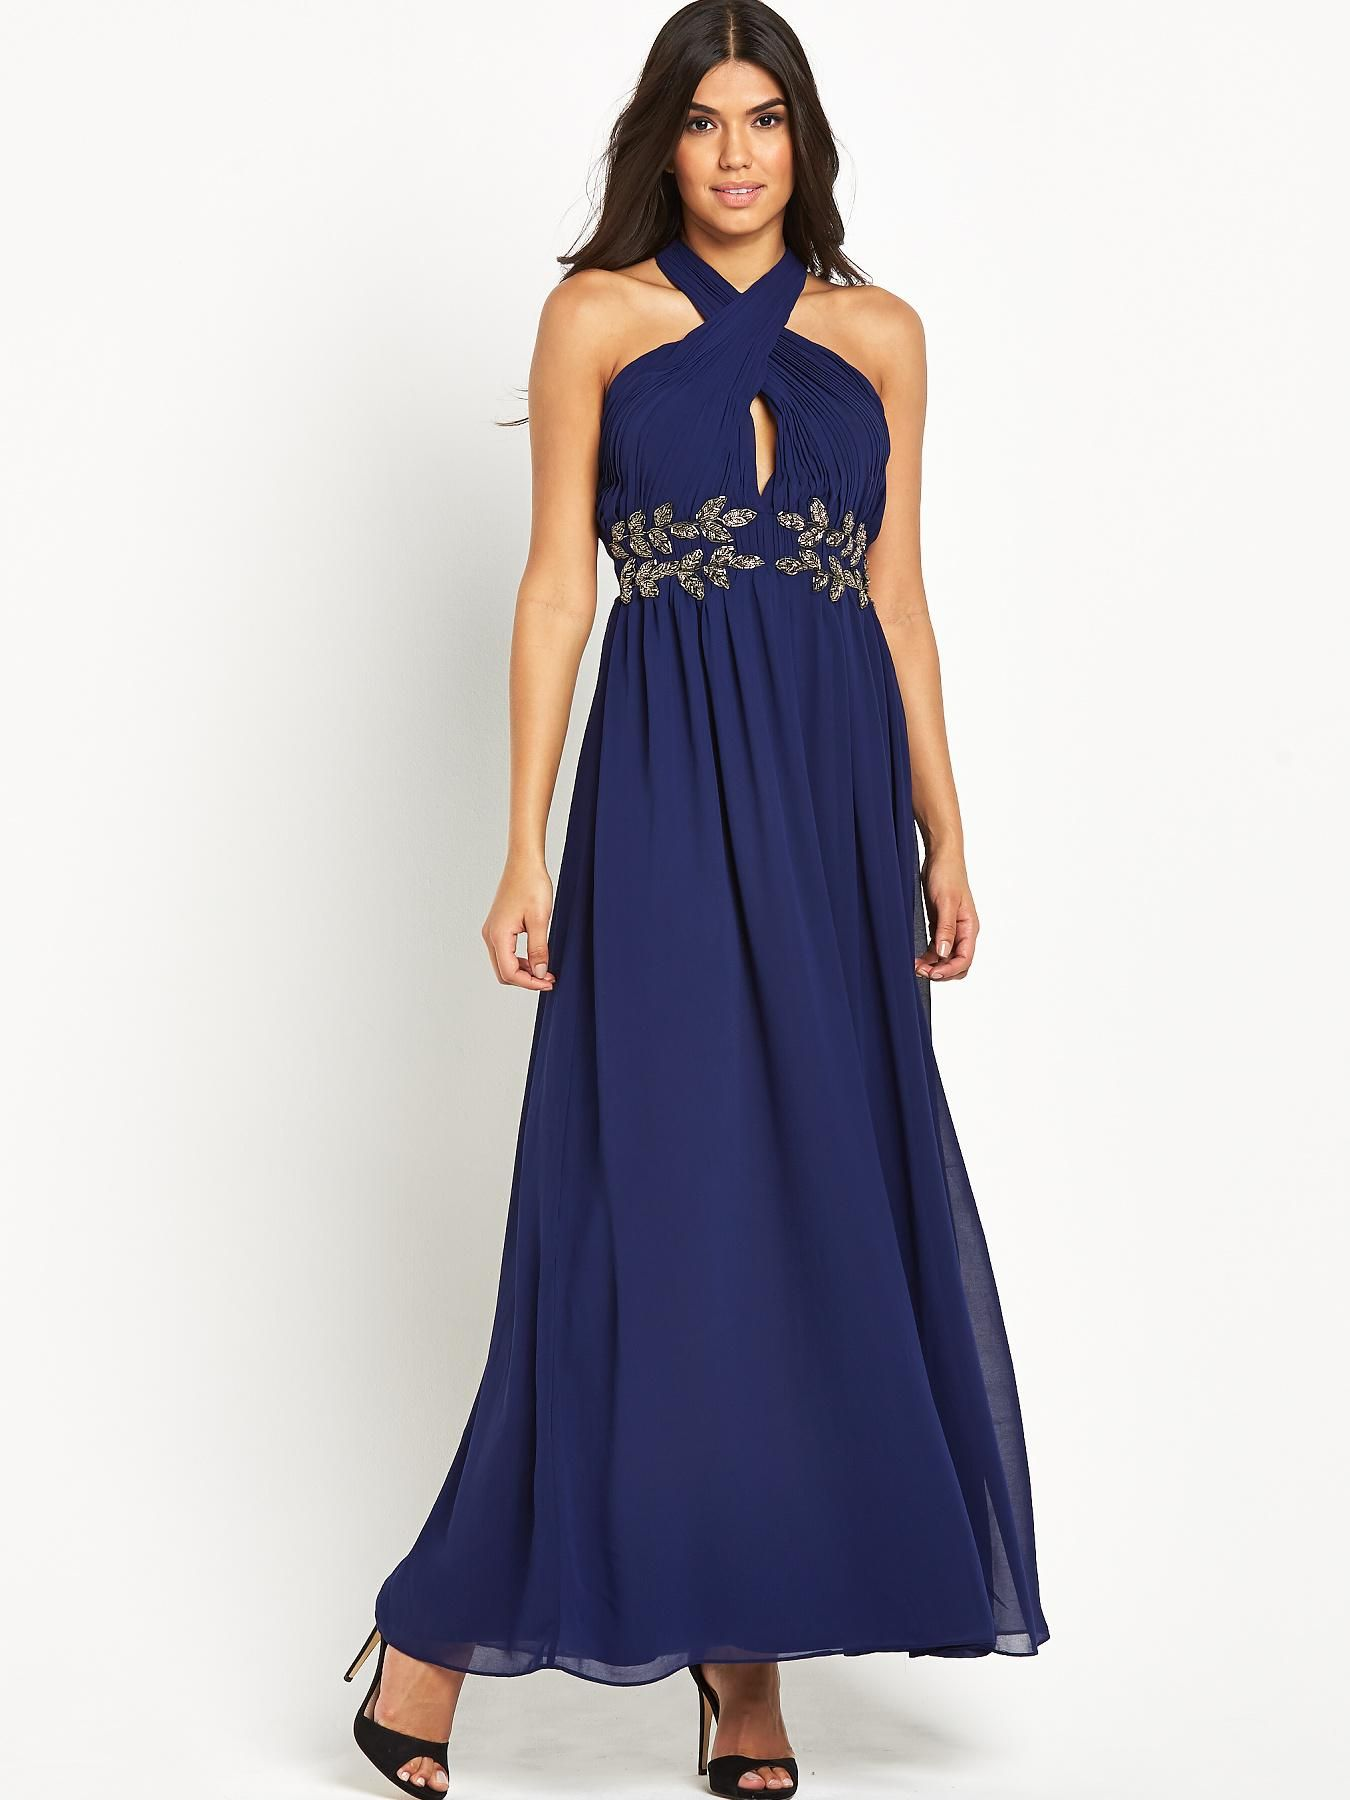 Littlewoods dresses for weddings  Pin by hung le on Larissa Schmidt Fashions  Pinterest  Halter maxi